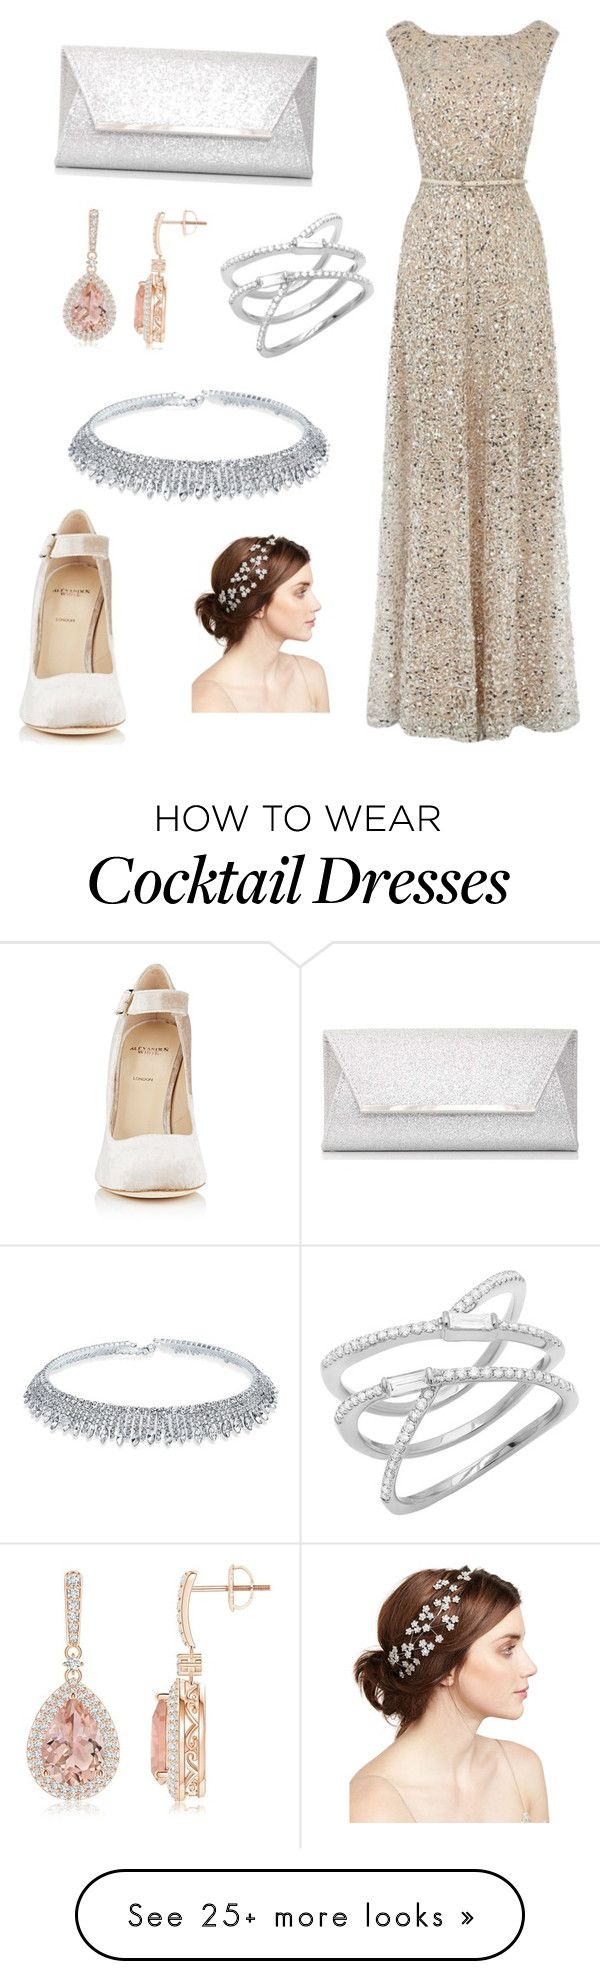 """kitty creations"" by willow-bilbrey on Polyvore featuring Alexander White, Dorothy Perkins and Jennifer Behr"